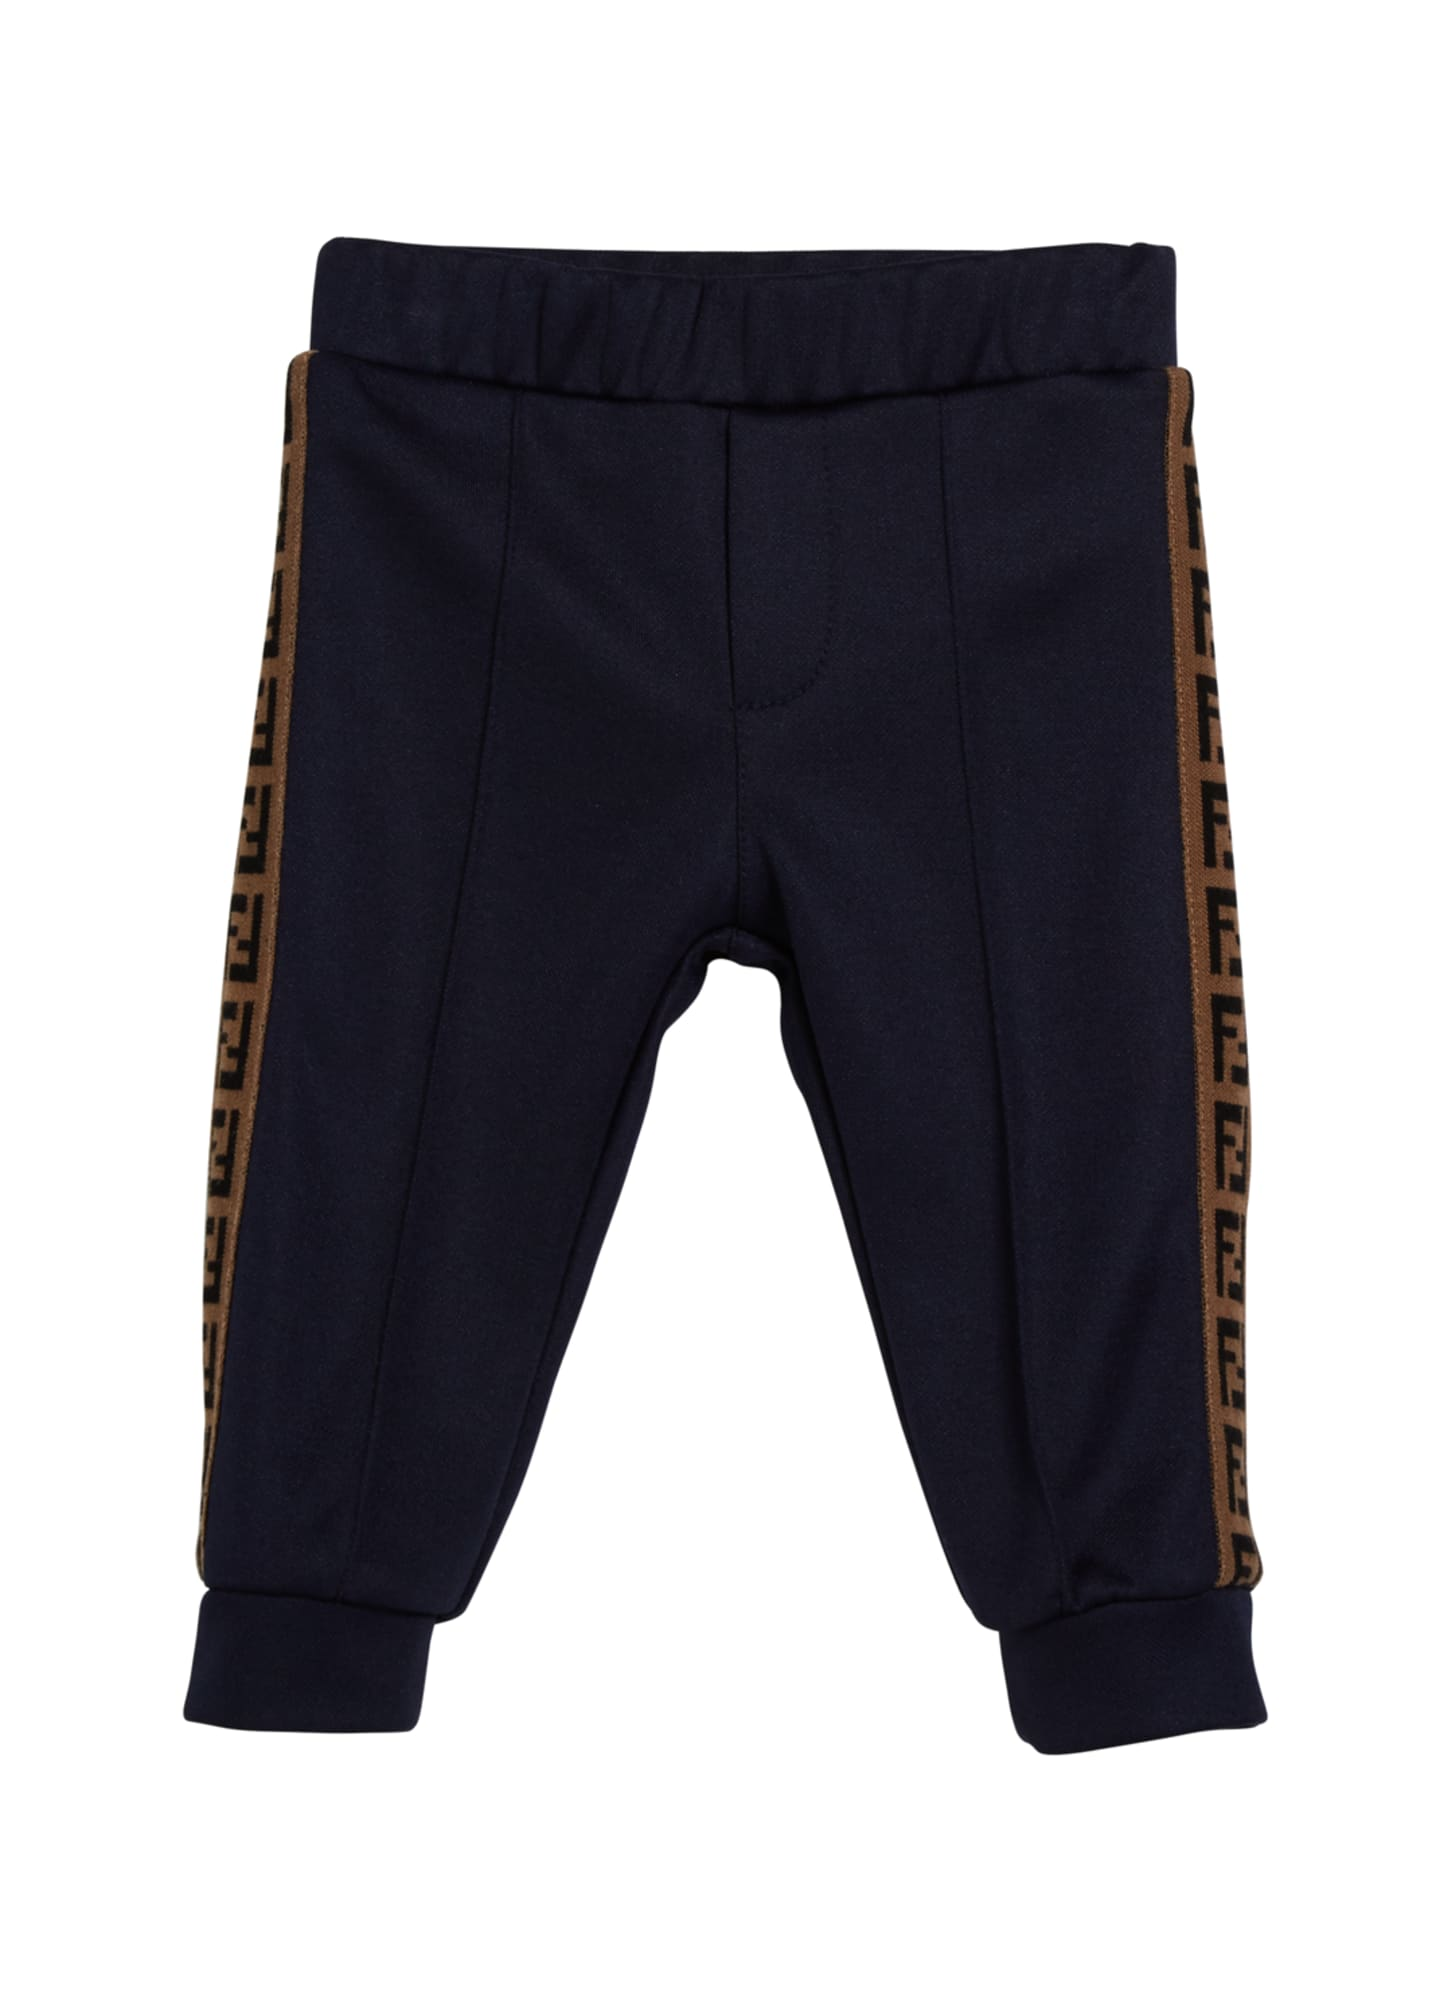 Fendi Boy's Track Pants w/ FF Taping, Size